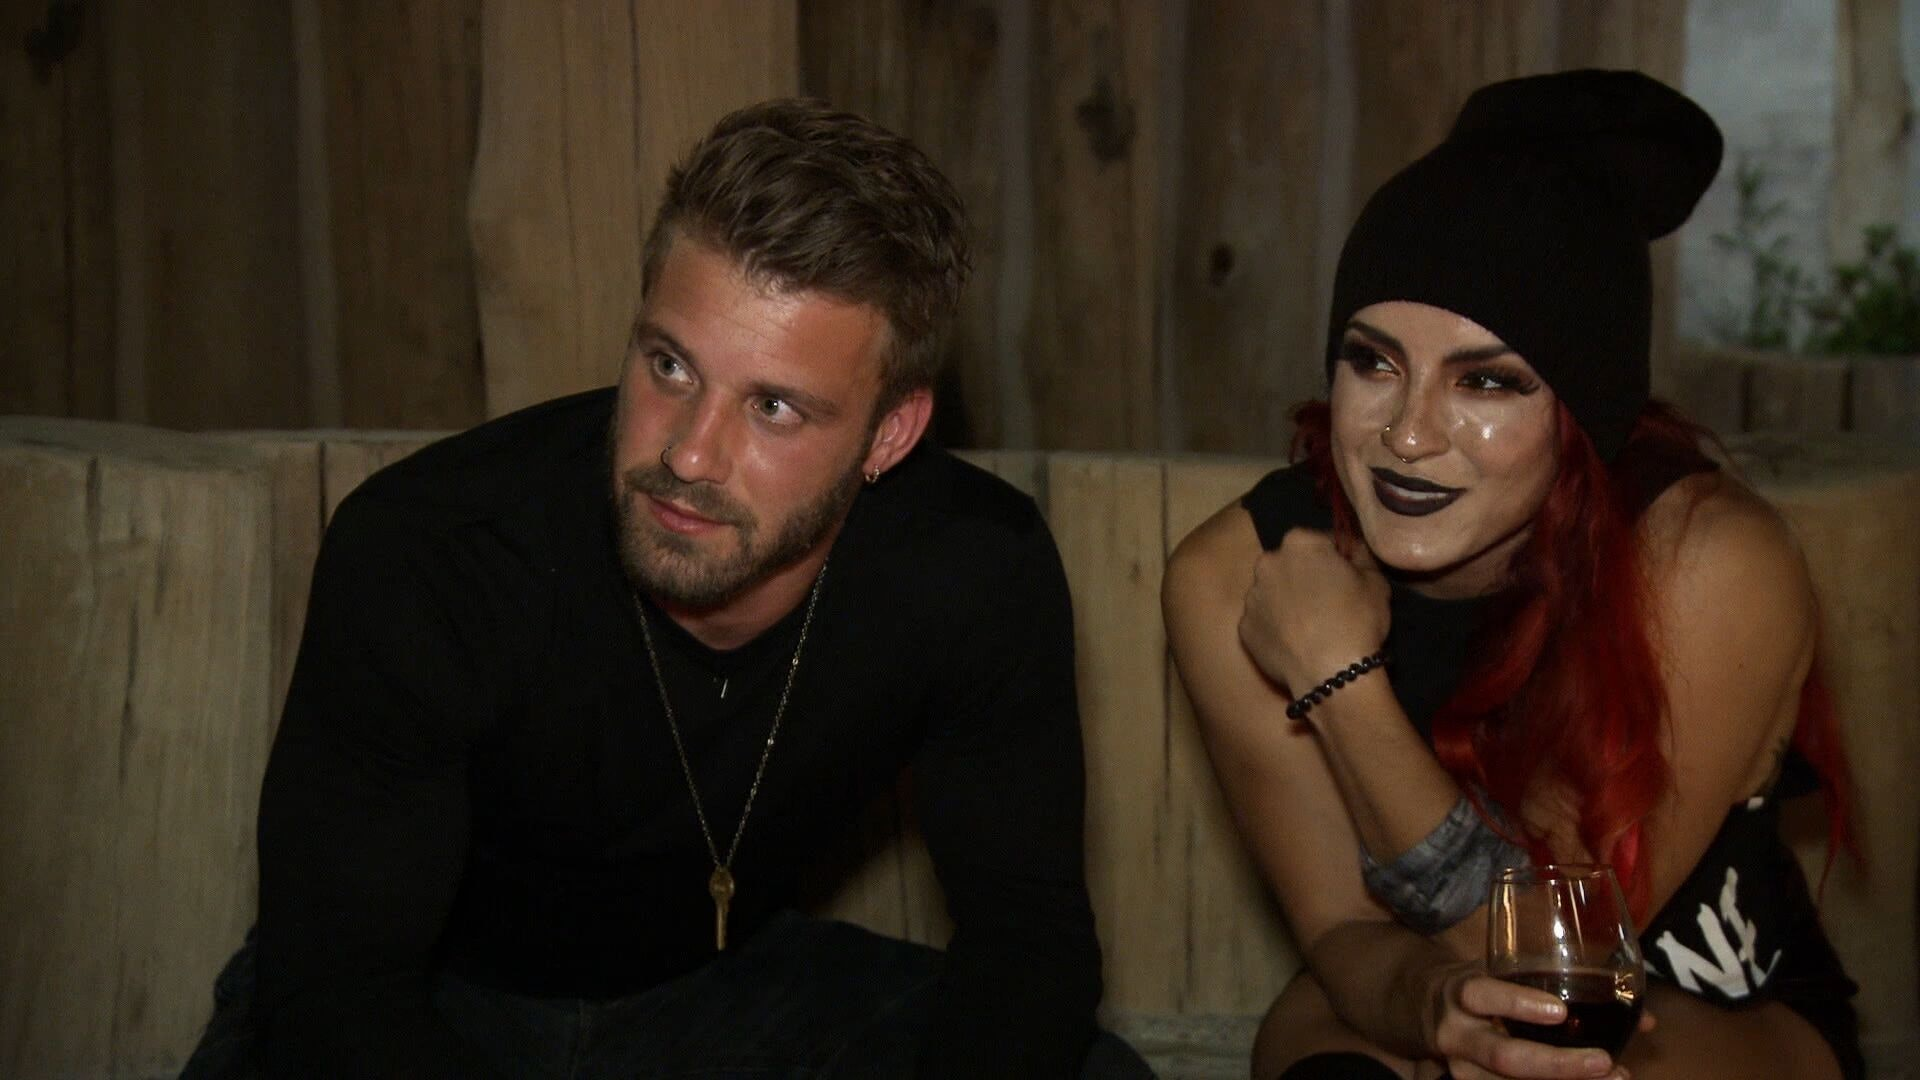 who was paulie dating before the challenge